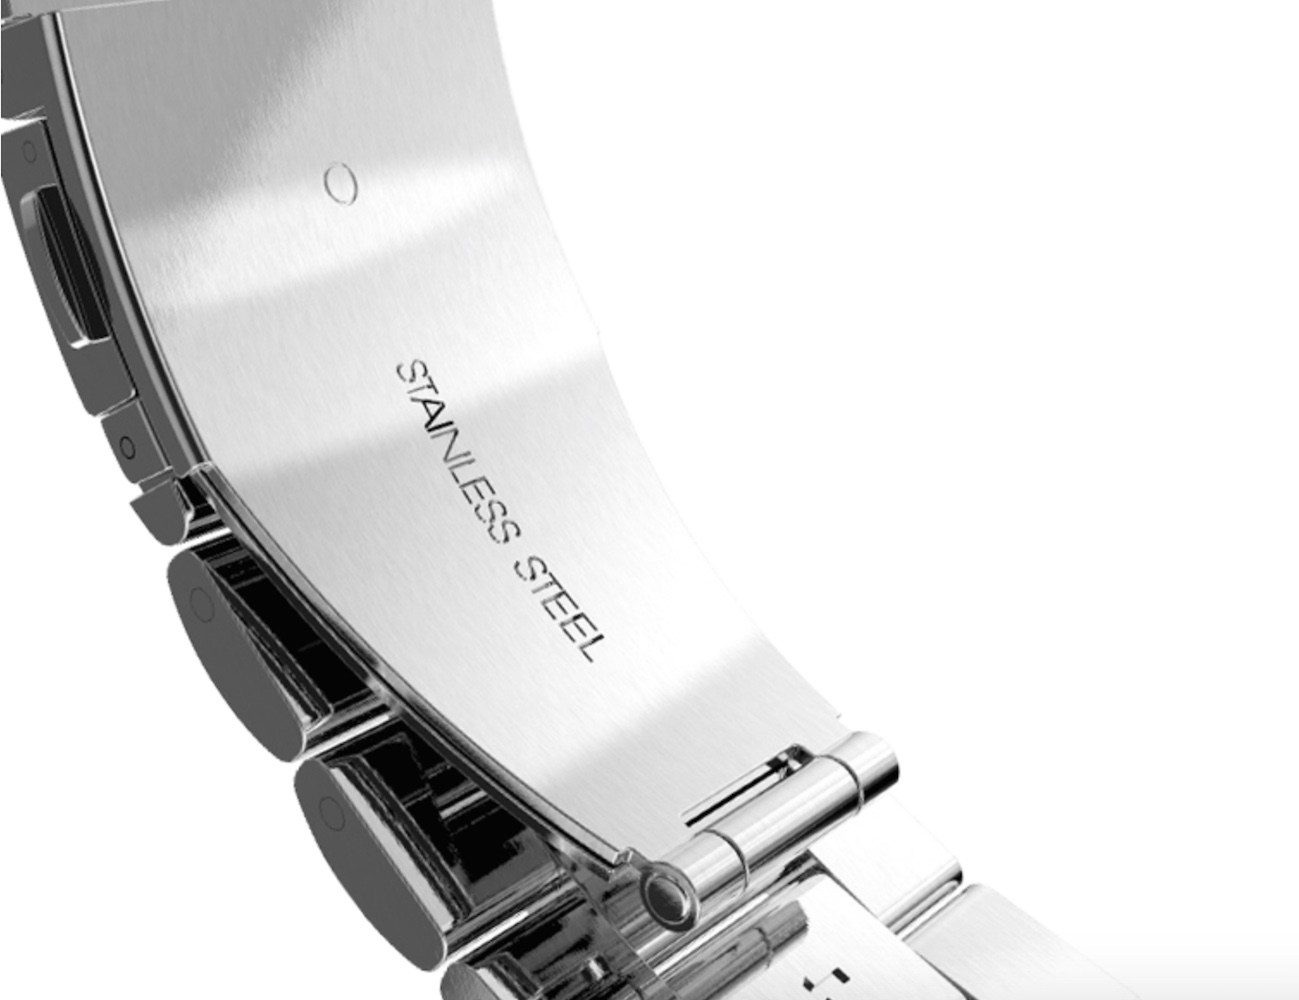 stainless-steel-band-for-apple-watch-by-hoco-2